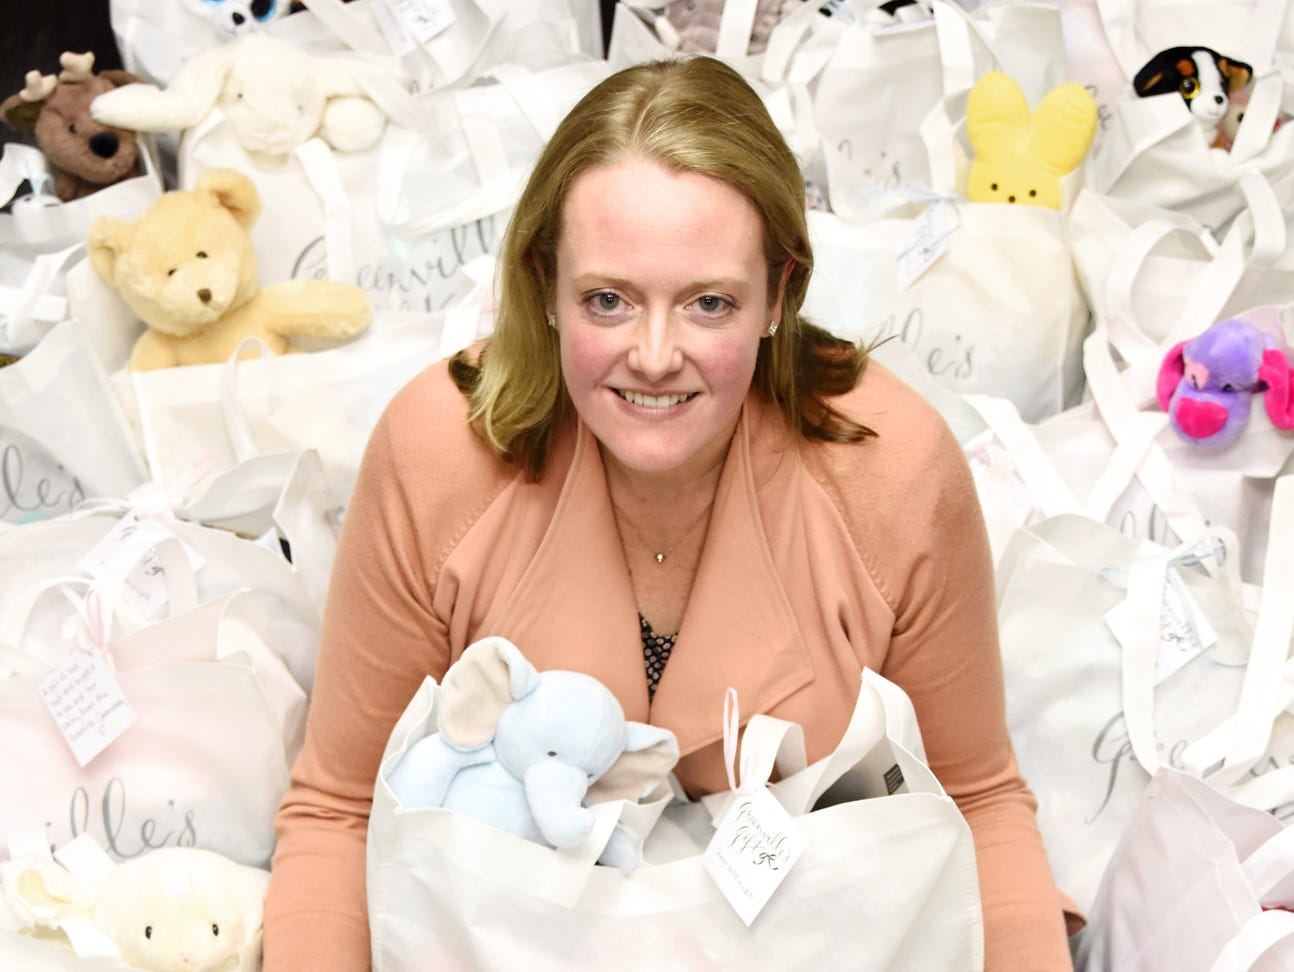 Marshall Johnson, founder of Greenville's Gift, sits with many of the bags that the organization gives to mothers in need.